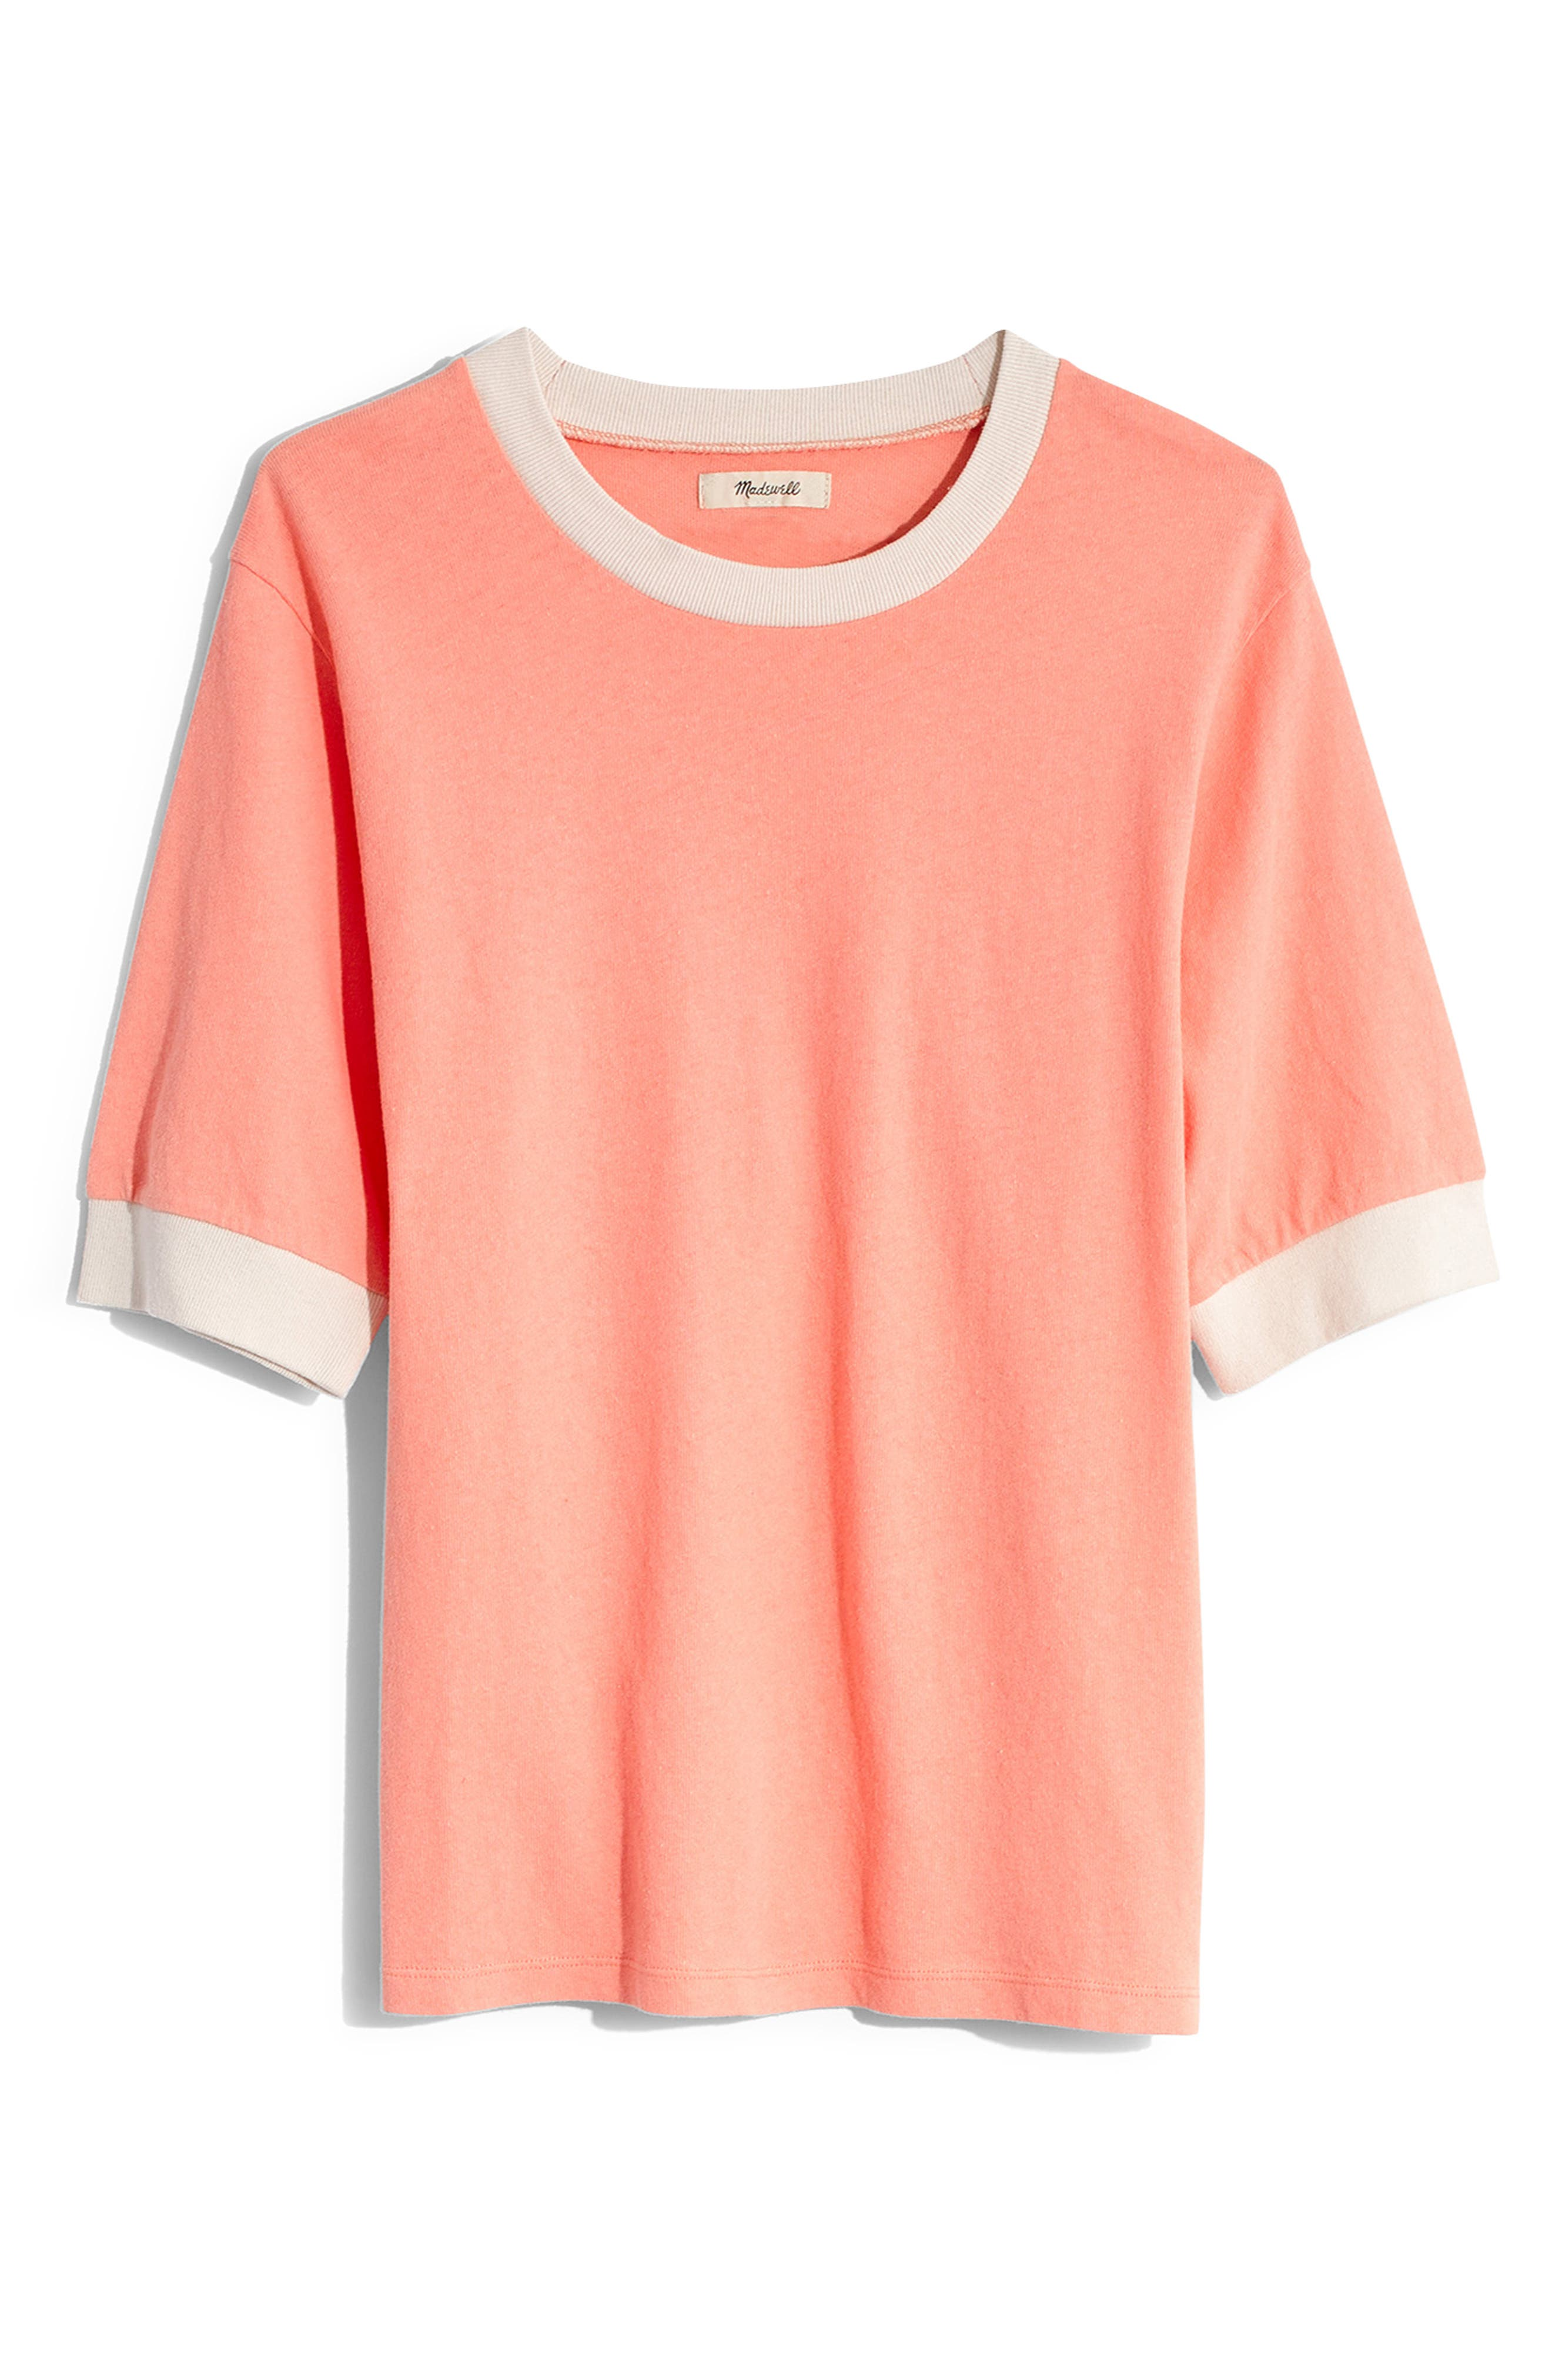 Madewell Relaxed Ringer Tee, Coral